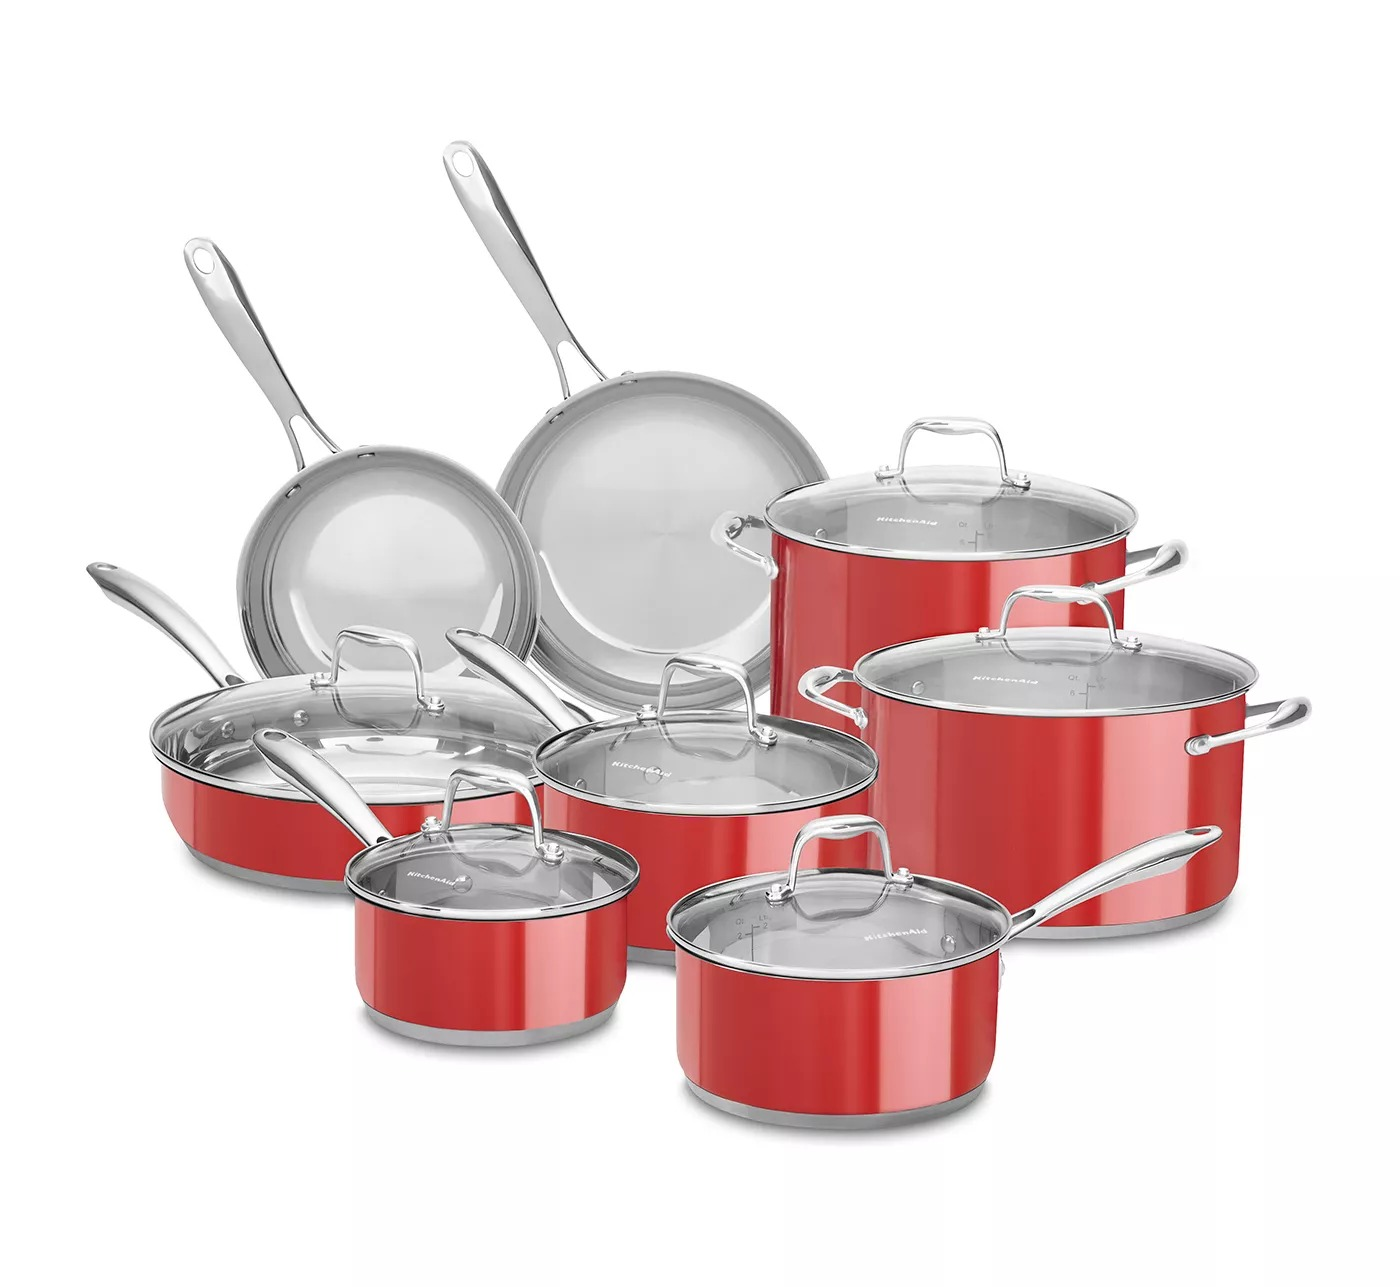 ihocon: KitchenAid 14pc Cookware Set with Glass Lids - Stainless Steel 不銹鋼鍋組